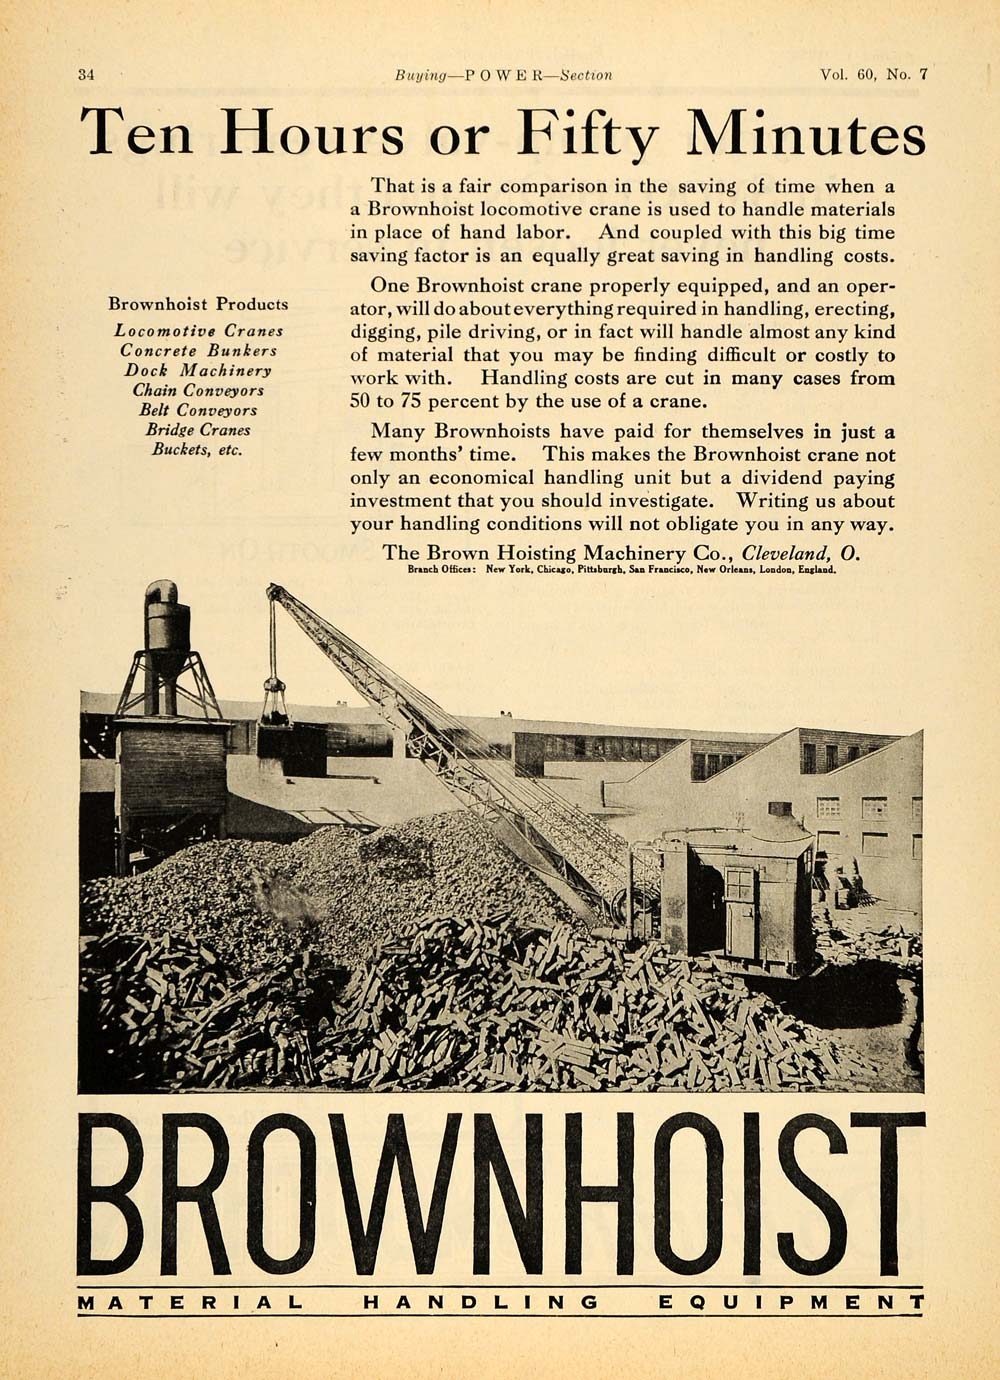 1924 Ad Brown Hoist Material Handling Locomotive Crane - ORIGINAL TPM1